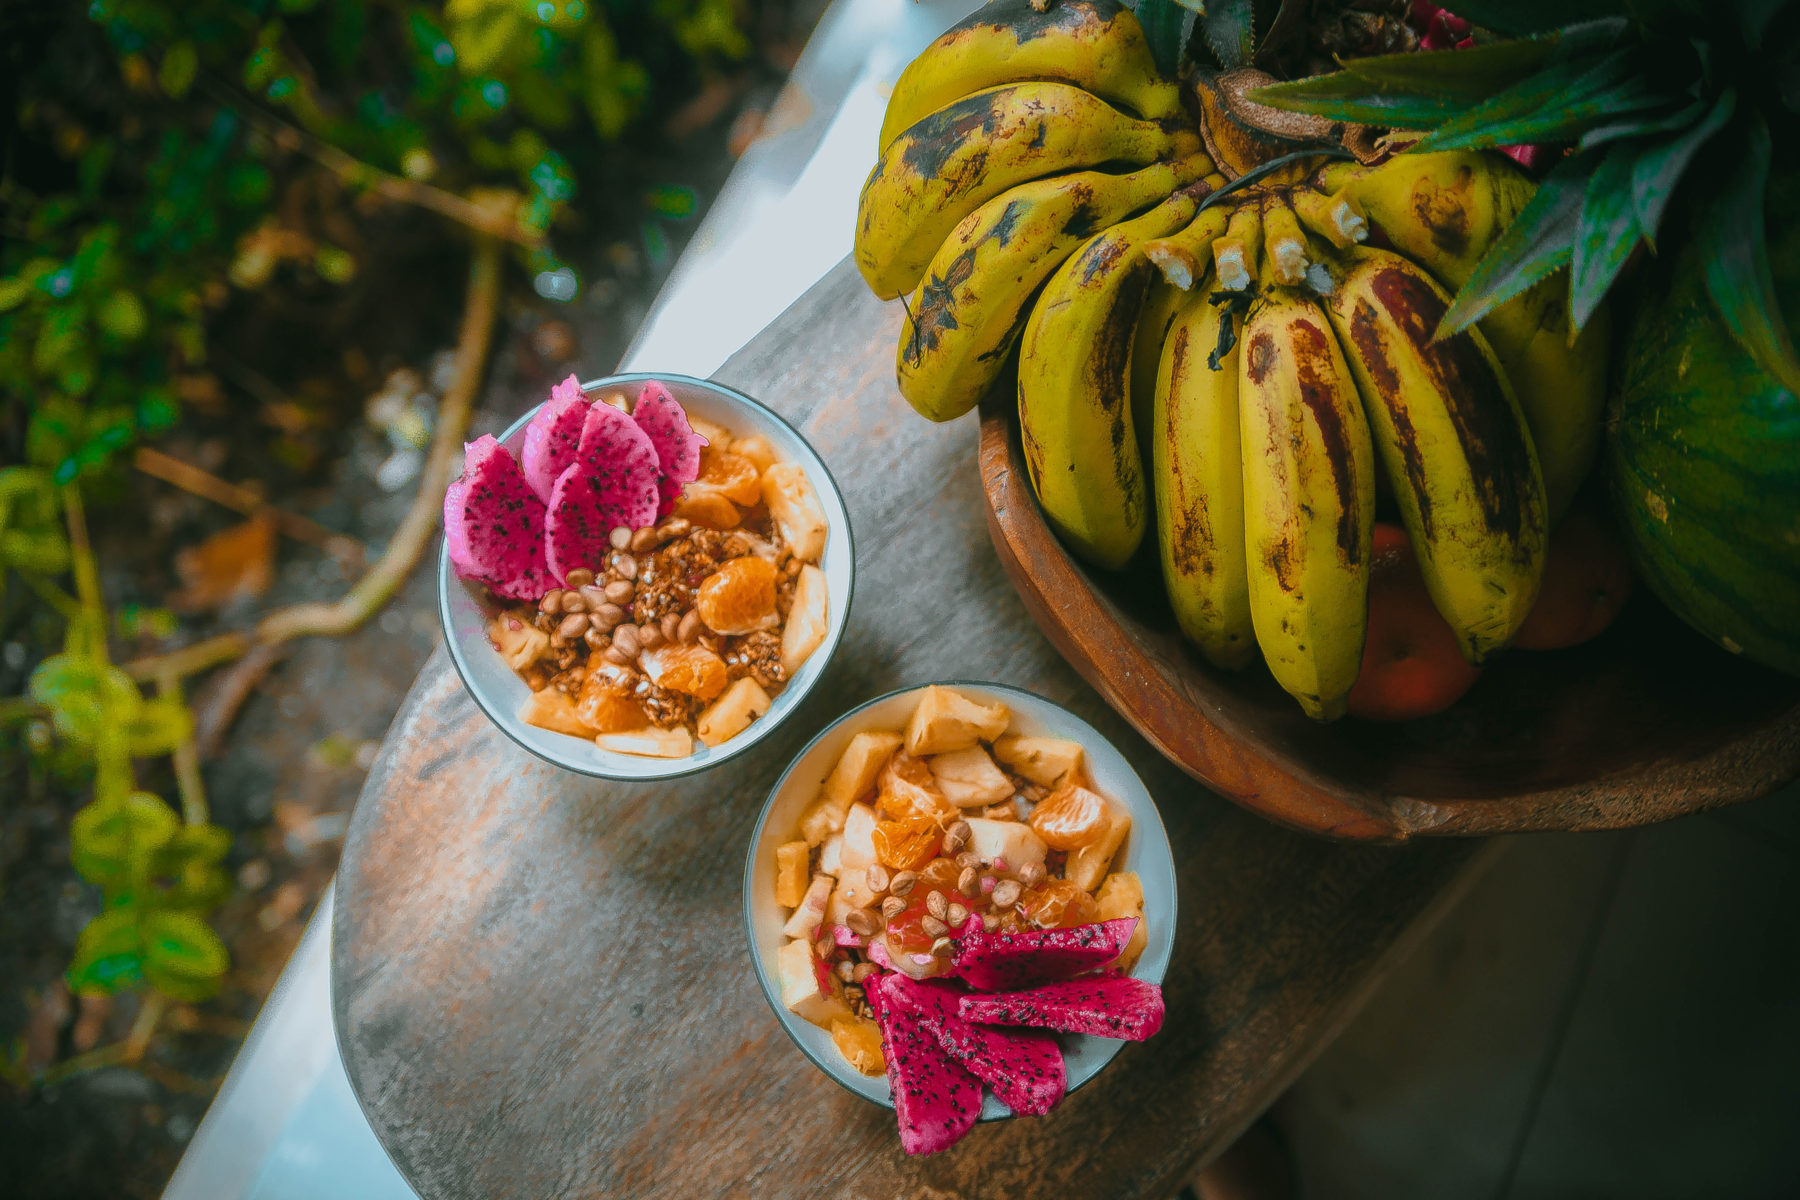 bali friends enjoying life and fresh fruit by the pool while on holidays in indonesia granola healthy vegan food fresh fruit